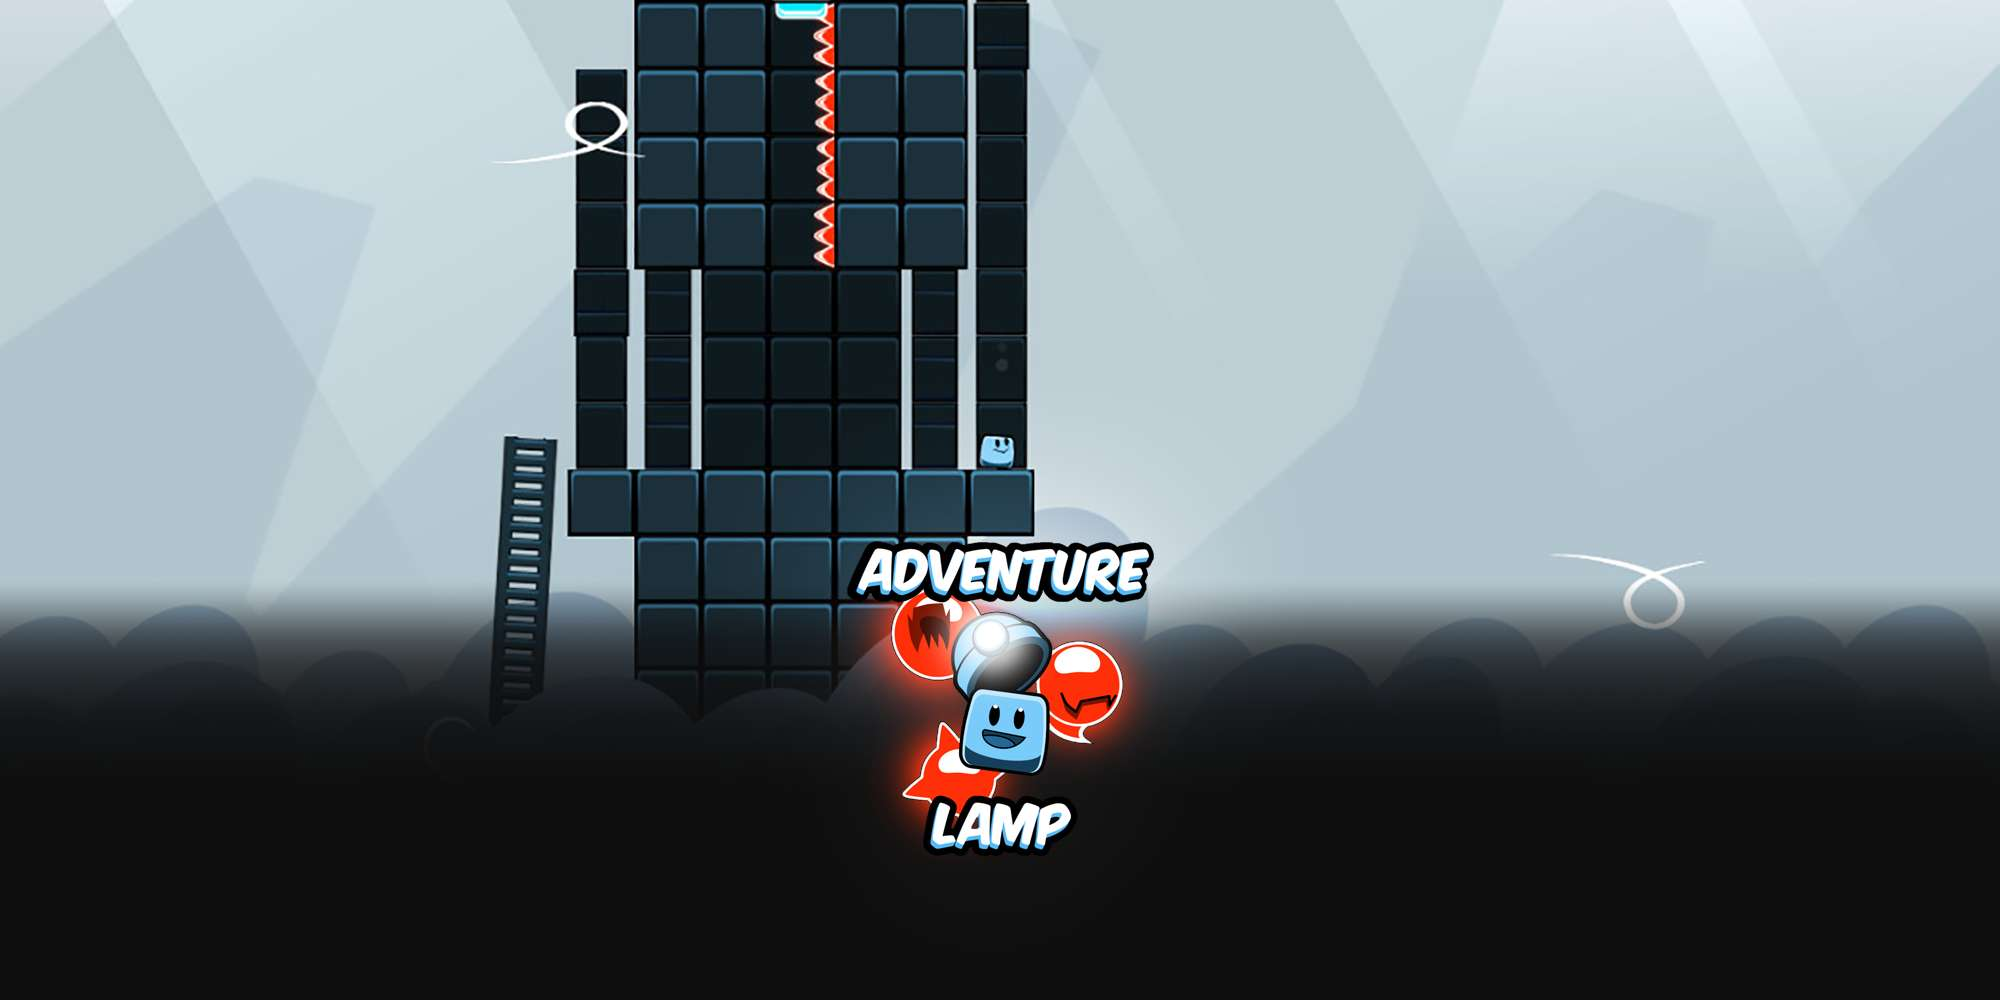 Adventure-Lamp-Loading-Background.jpg